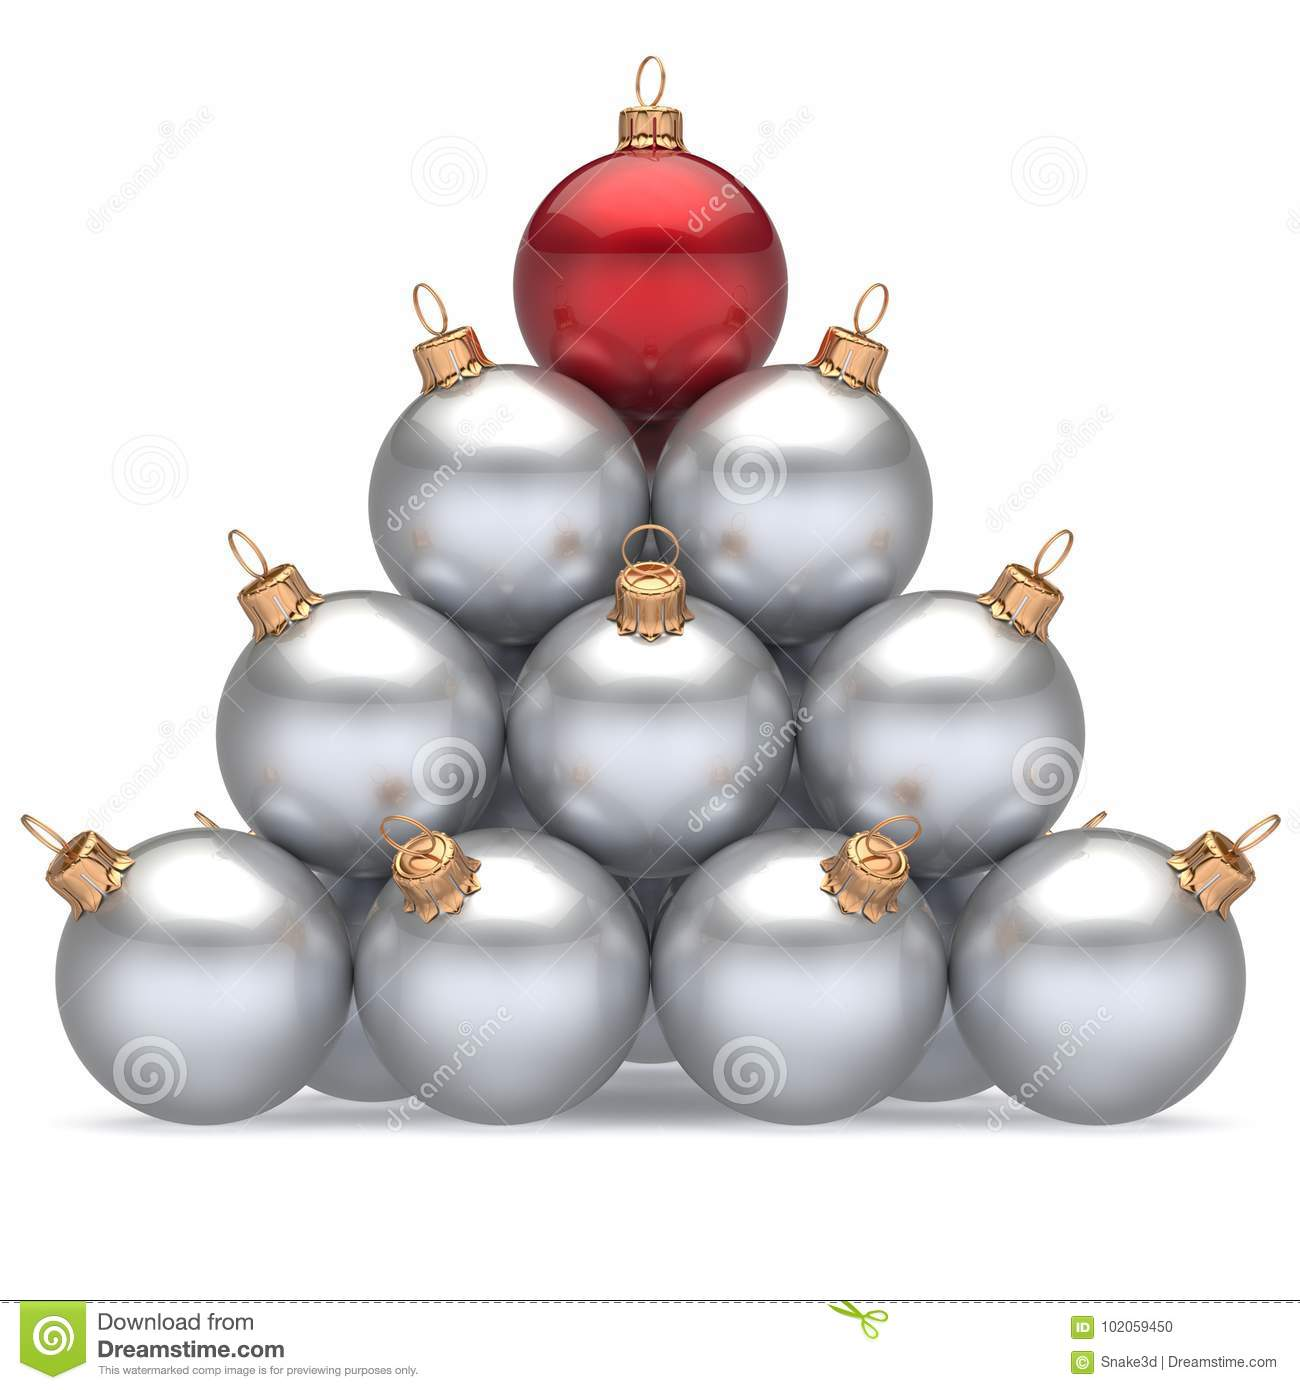 Pyramid christmas balls white leader red on top first place win